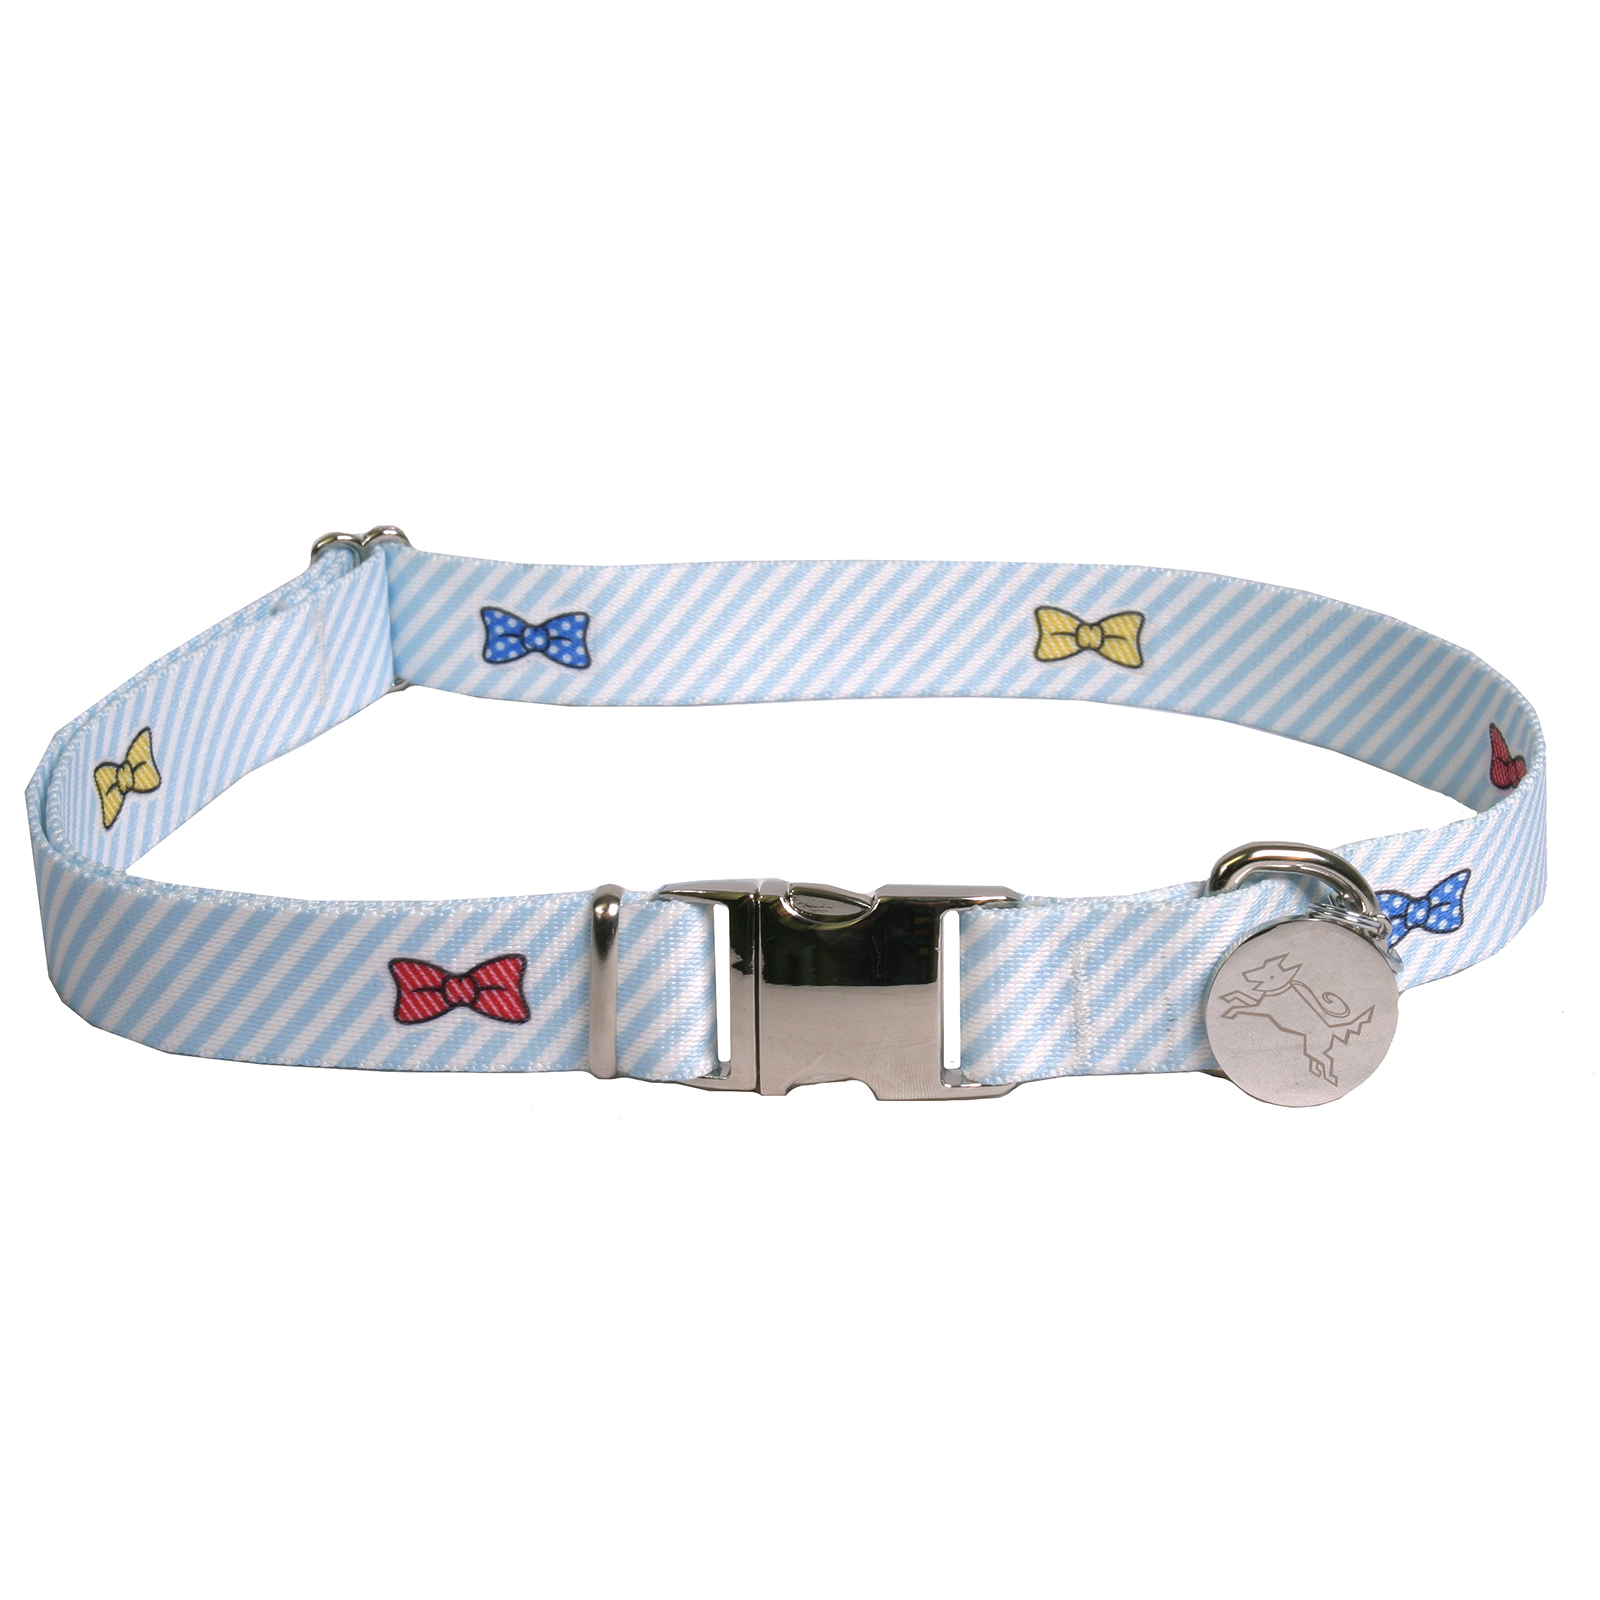 Southern Dawg: Seersucker Blue w/Bow Ties Premium Dog Collar